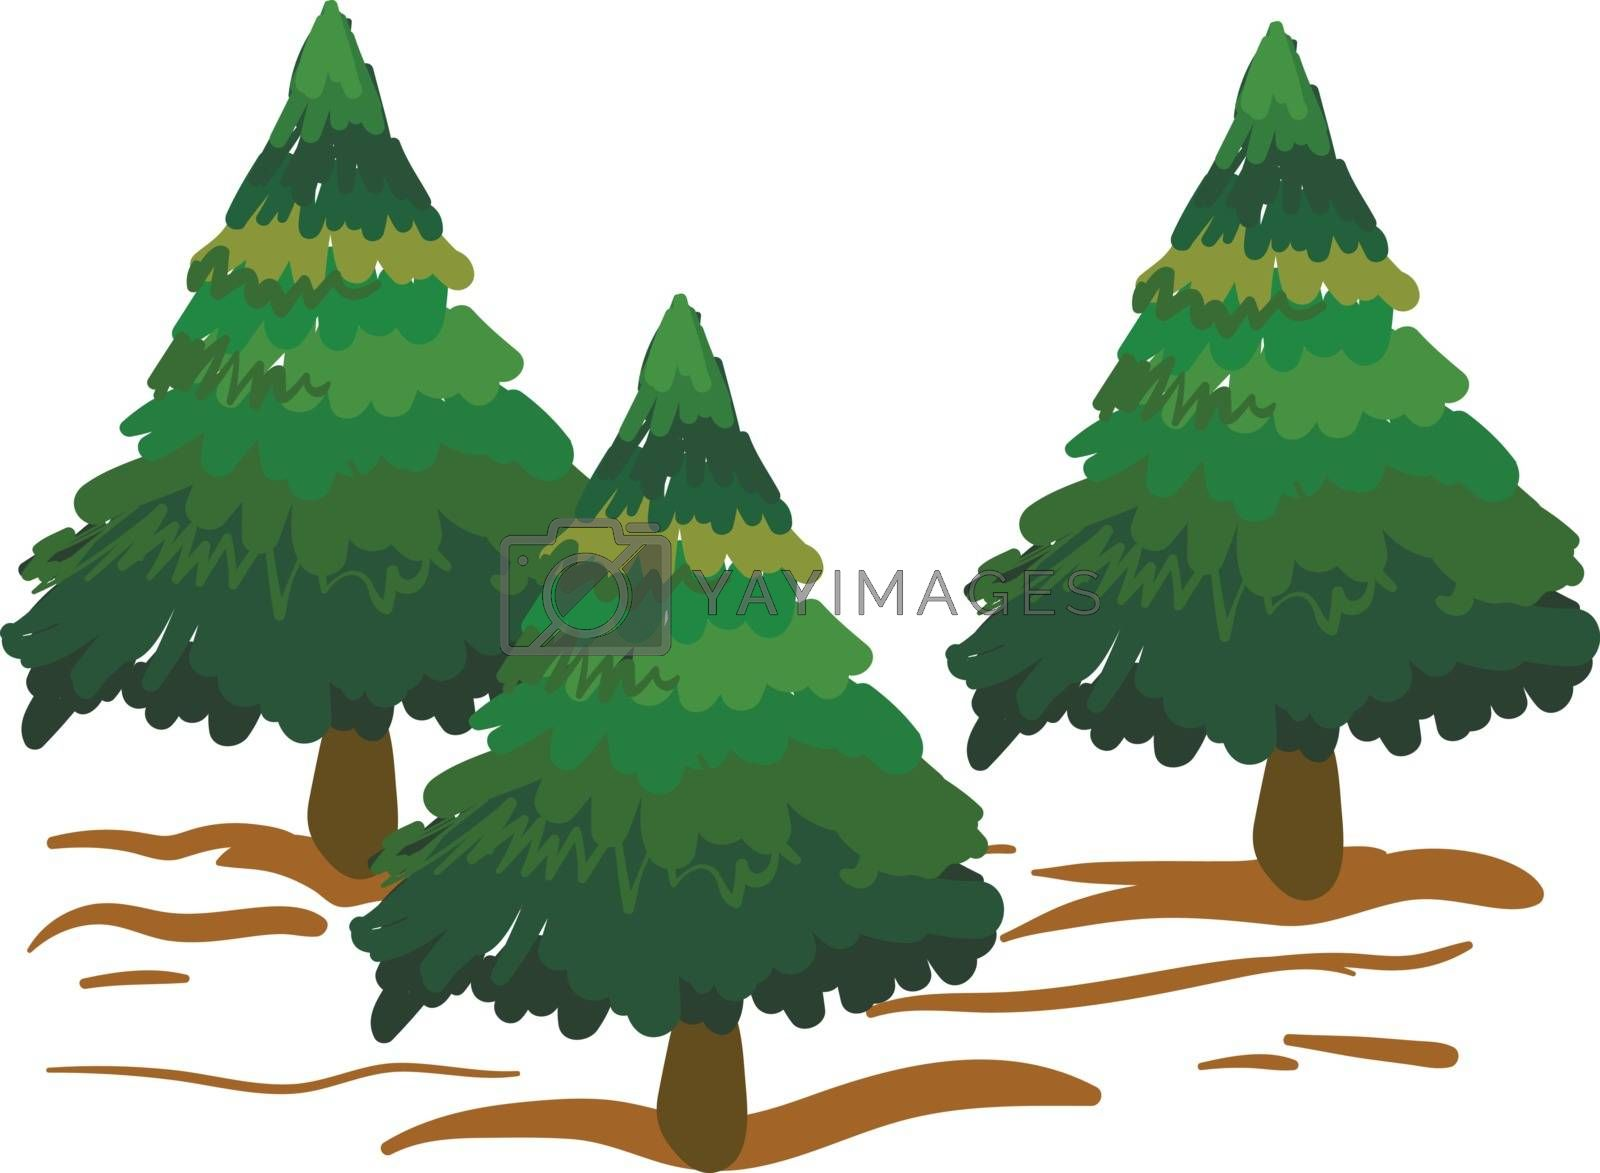 Royalty free image of Clipart of spruce trees/Xmas trees vector or color illustration by Morphart